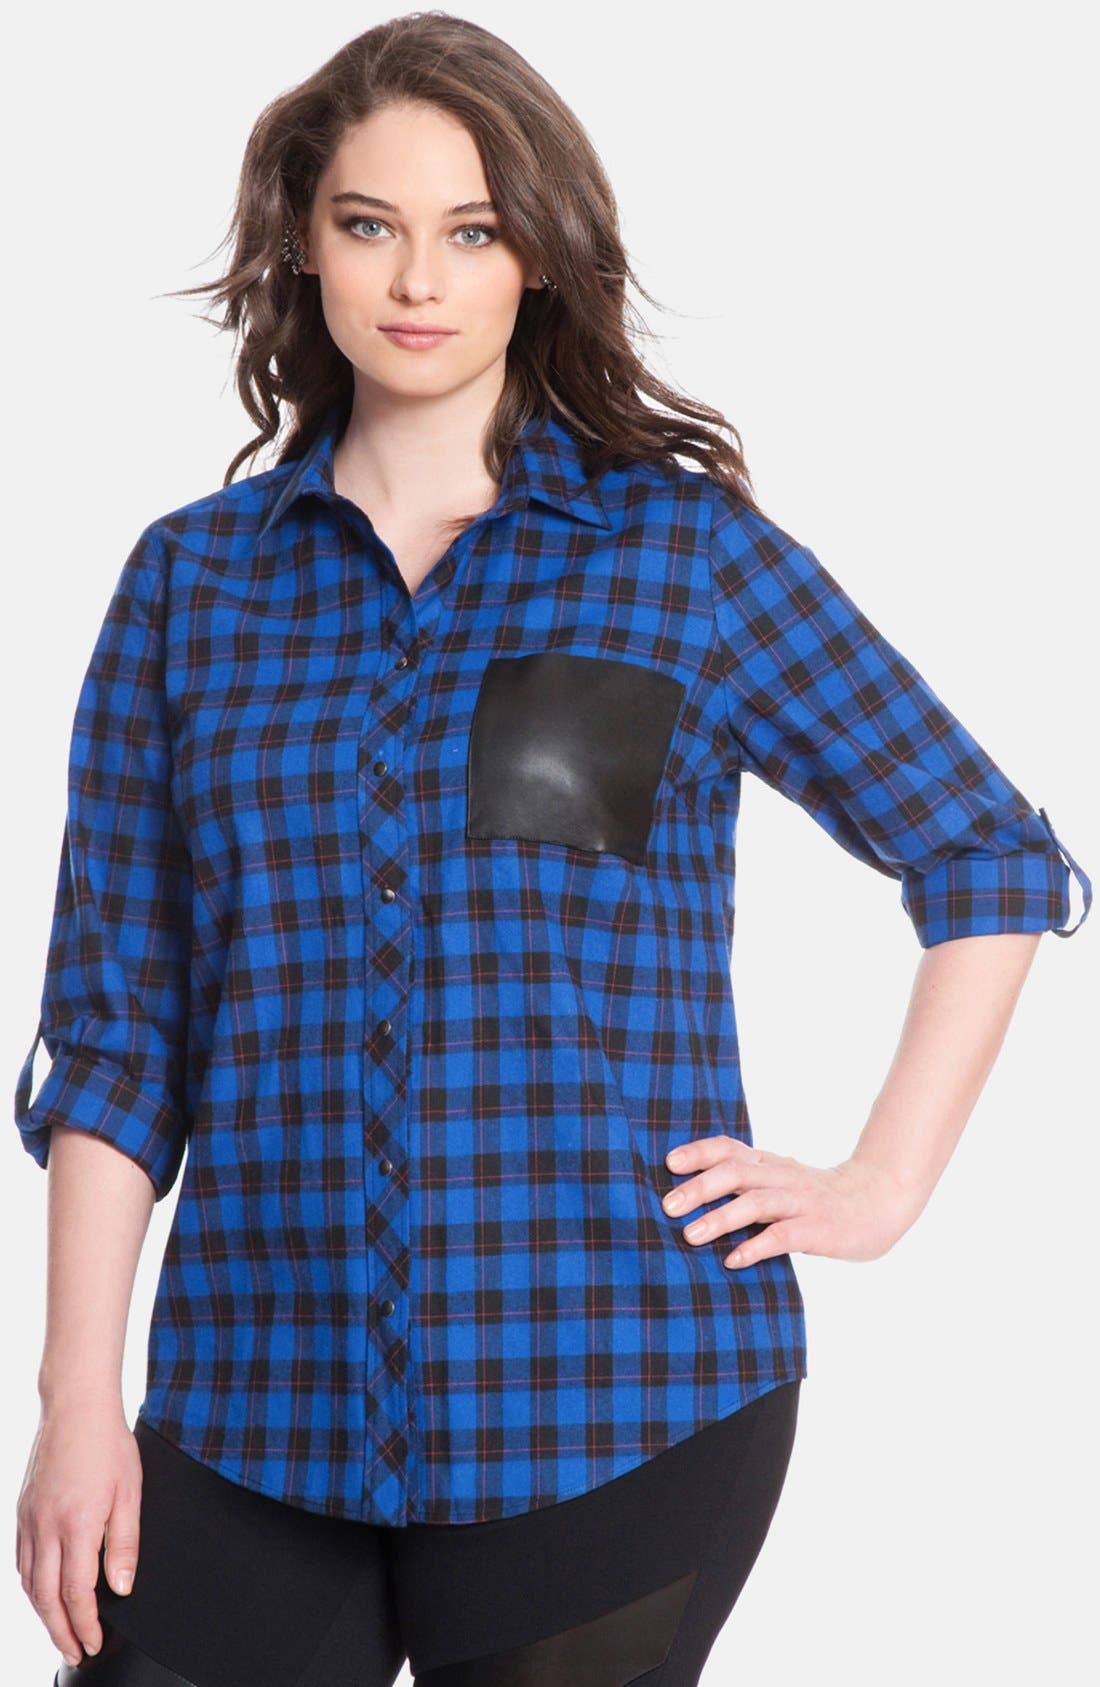 Alternate Image 1 Selected - ELOQUII Plaid Cotton Flannel Shirt (Plus Size)